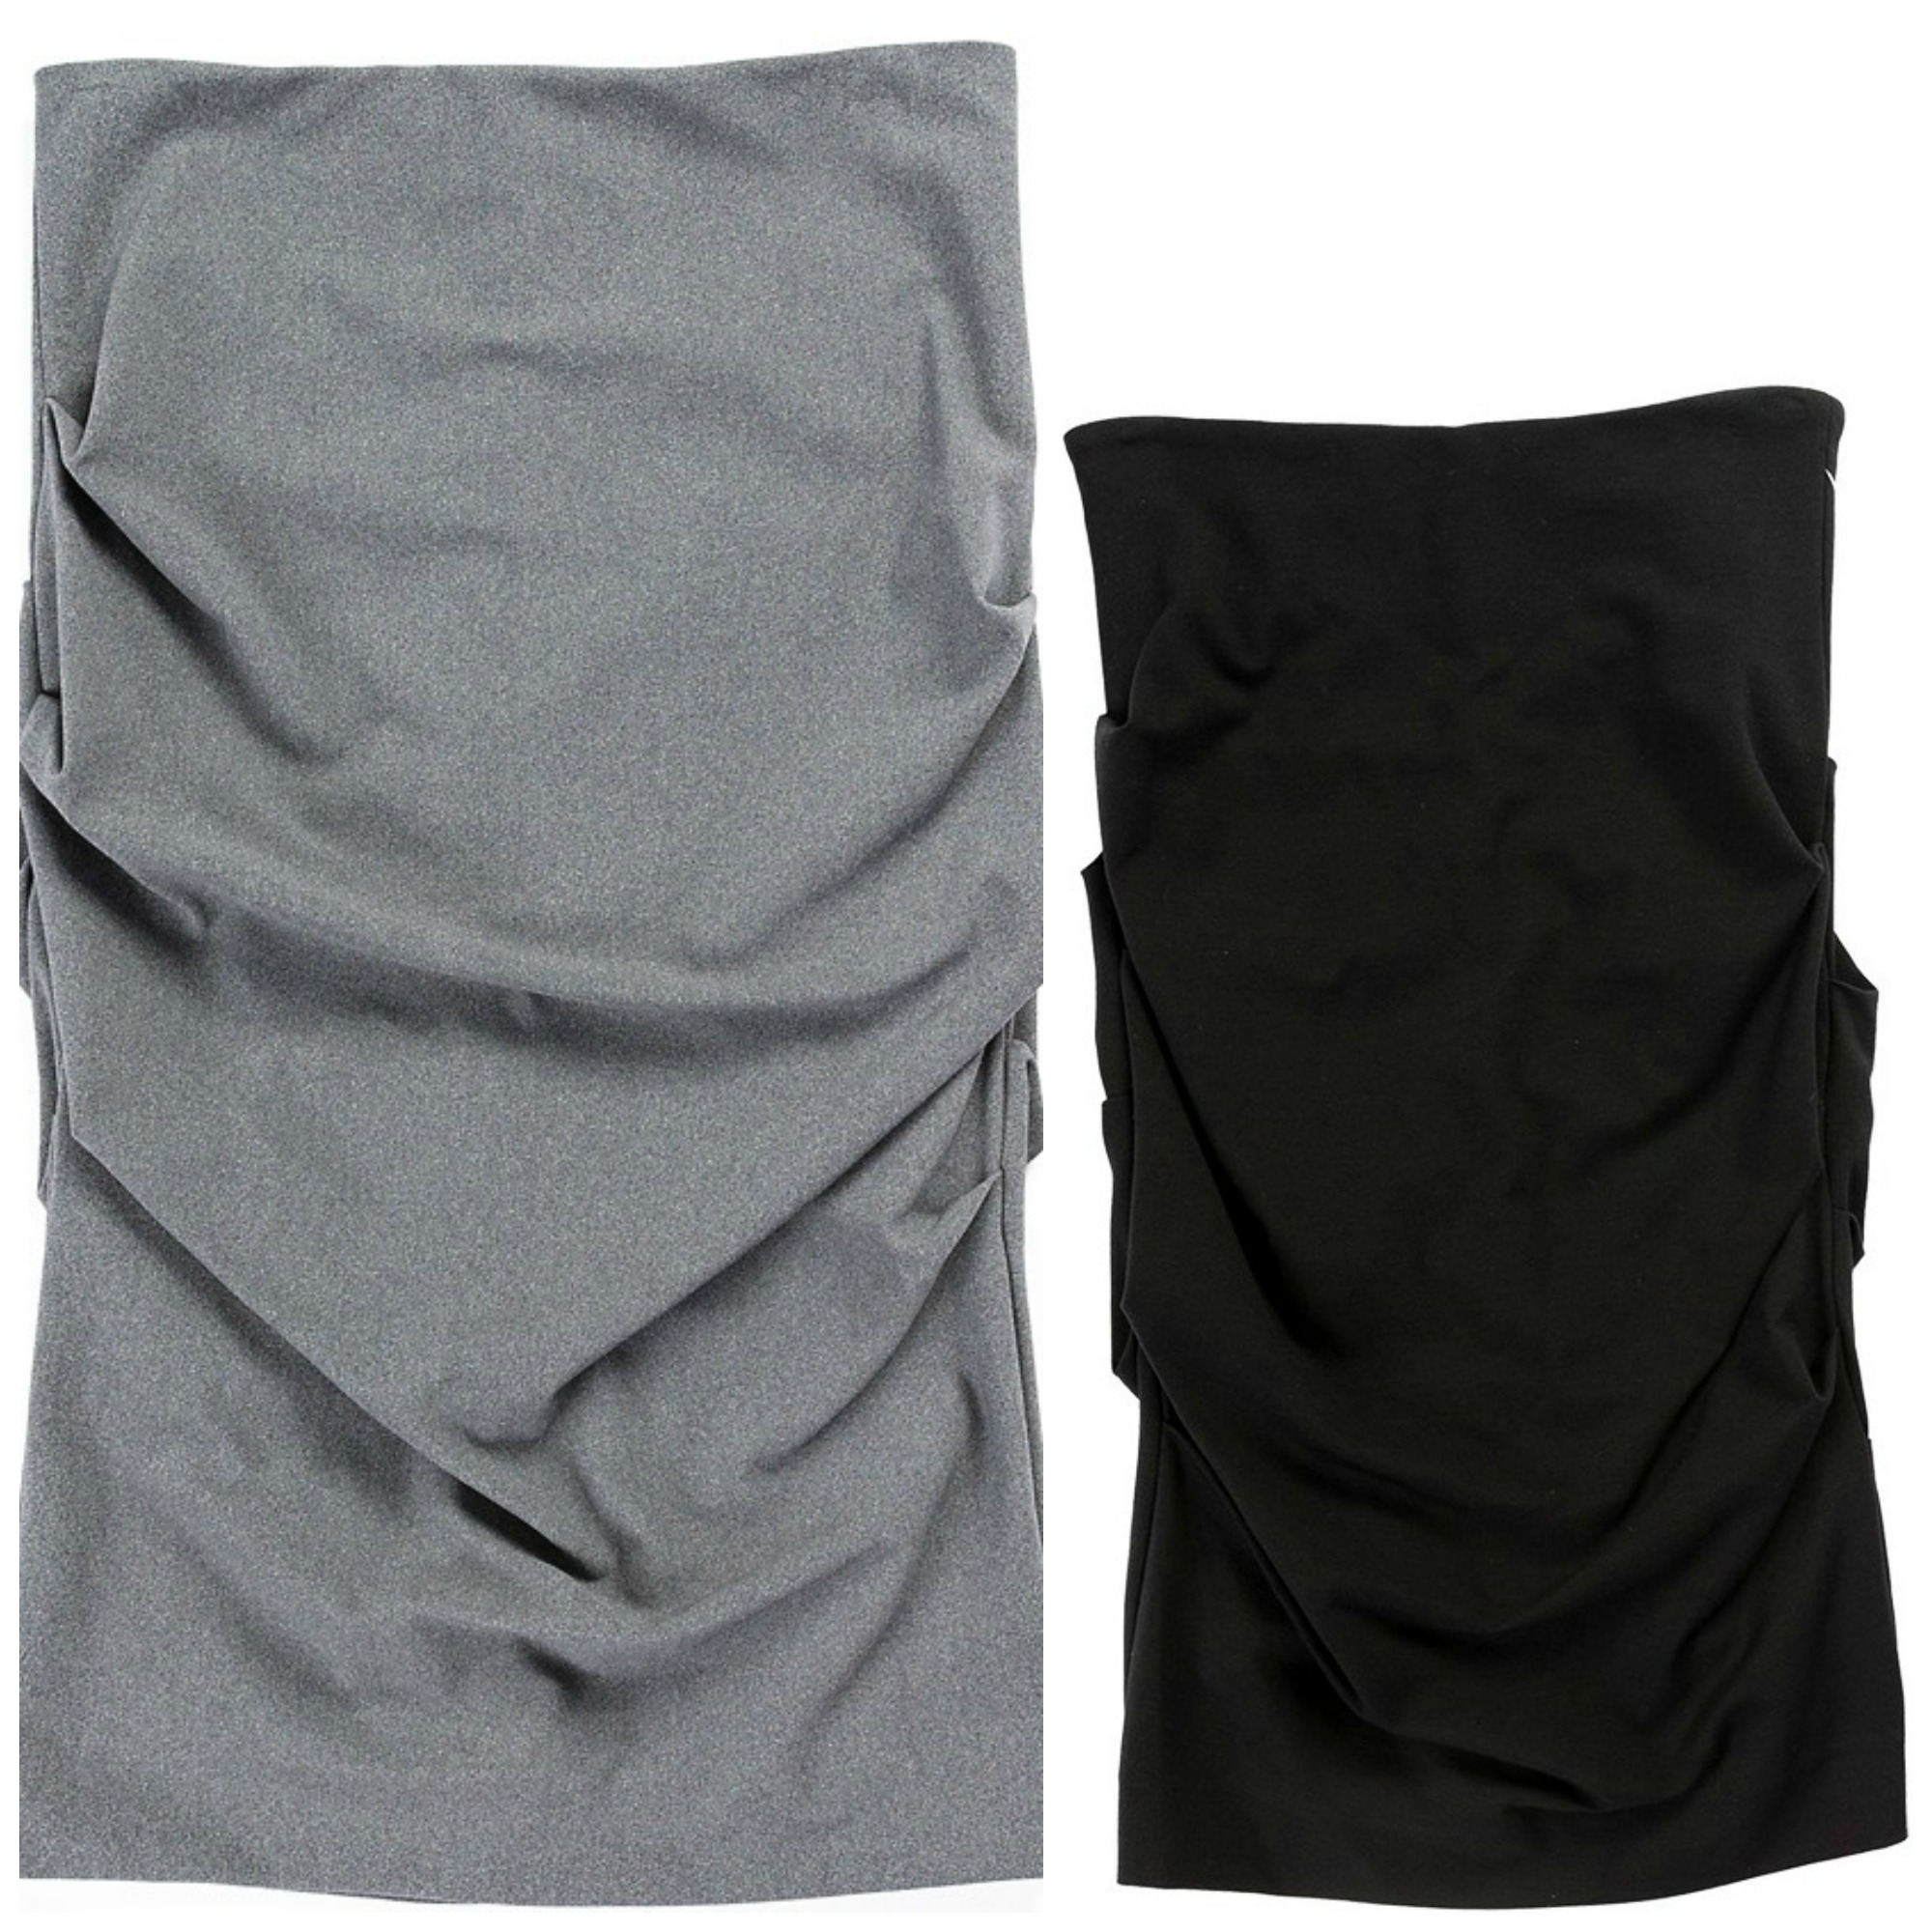 Nicole Miller ruched gray and black pencil skirts basics